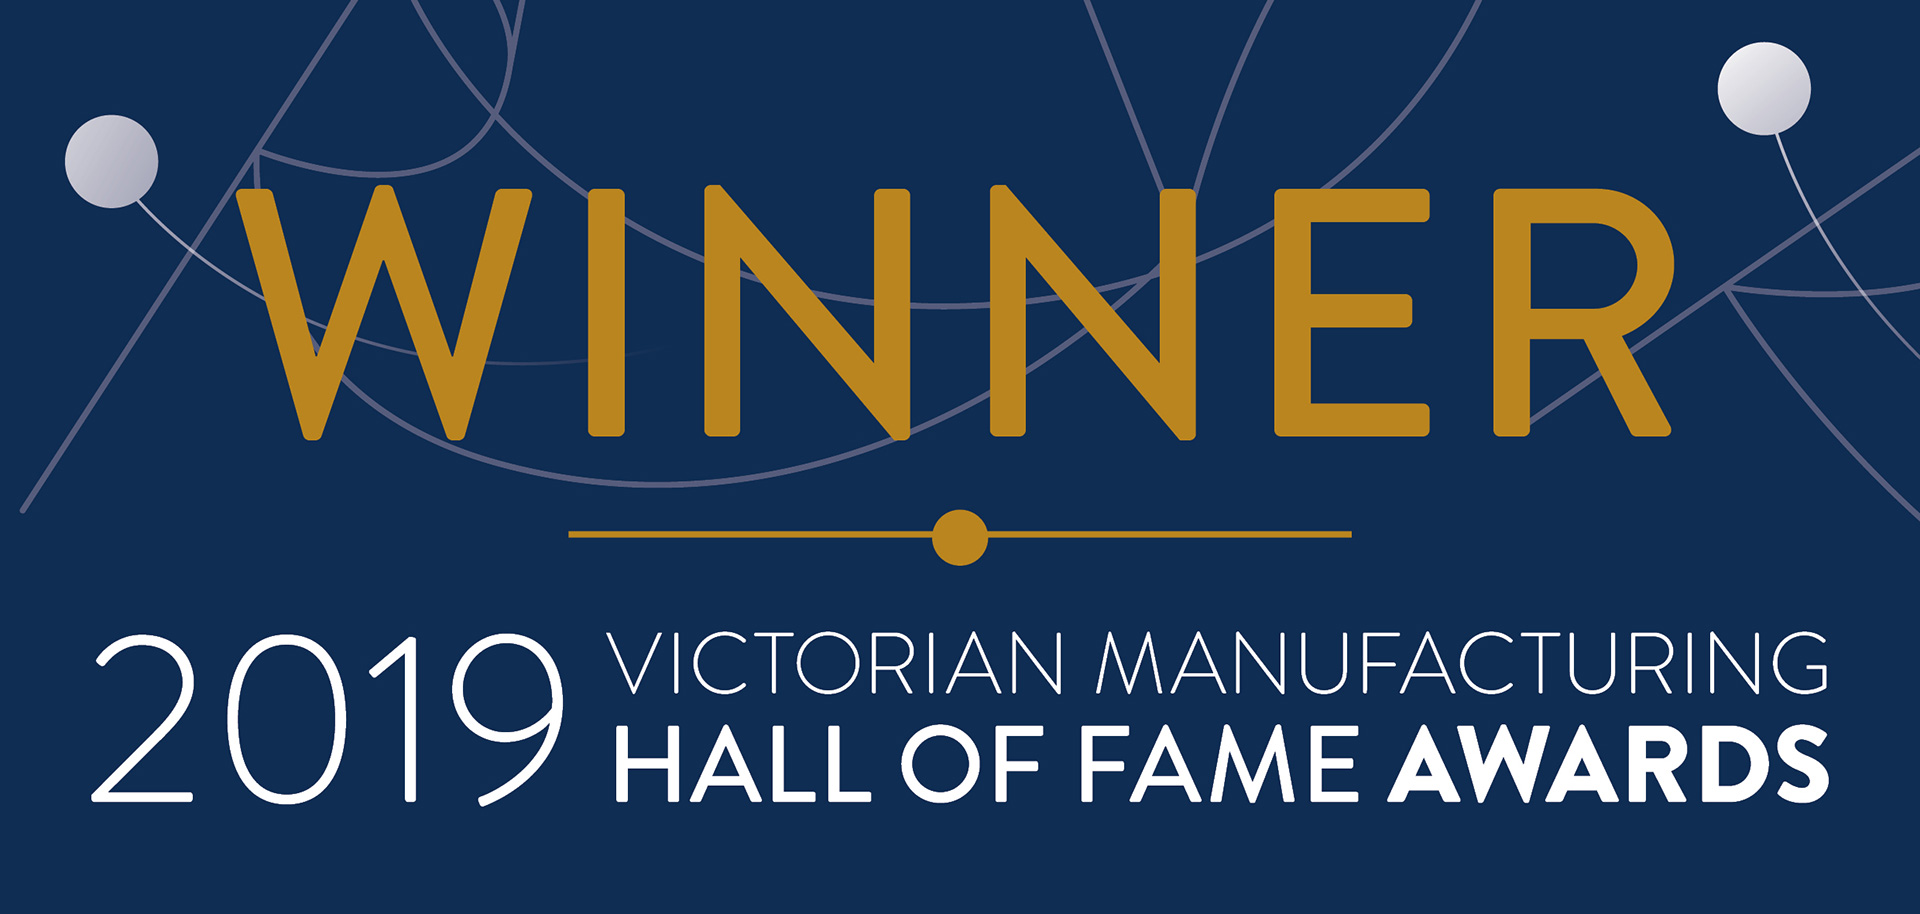 HSV is proud to announce its recent success at the 2019 Victorian Manufacturing Hall of Fame Awards.